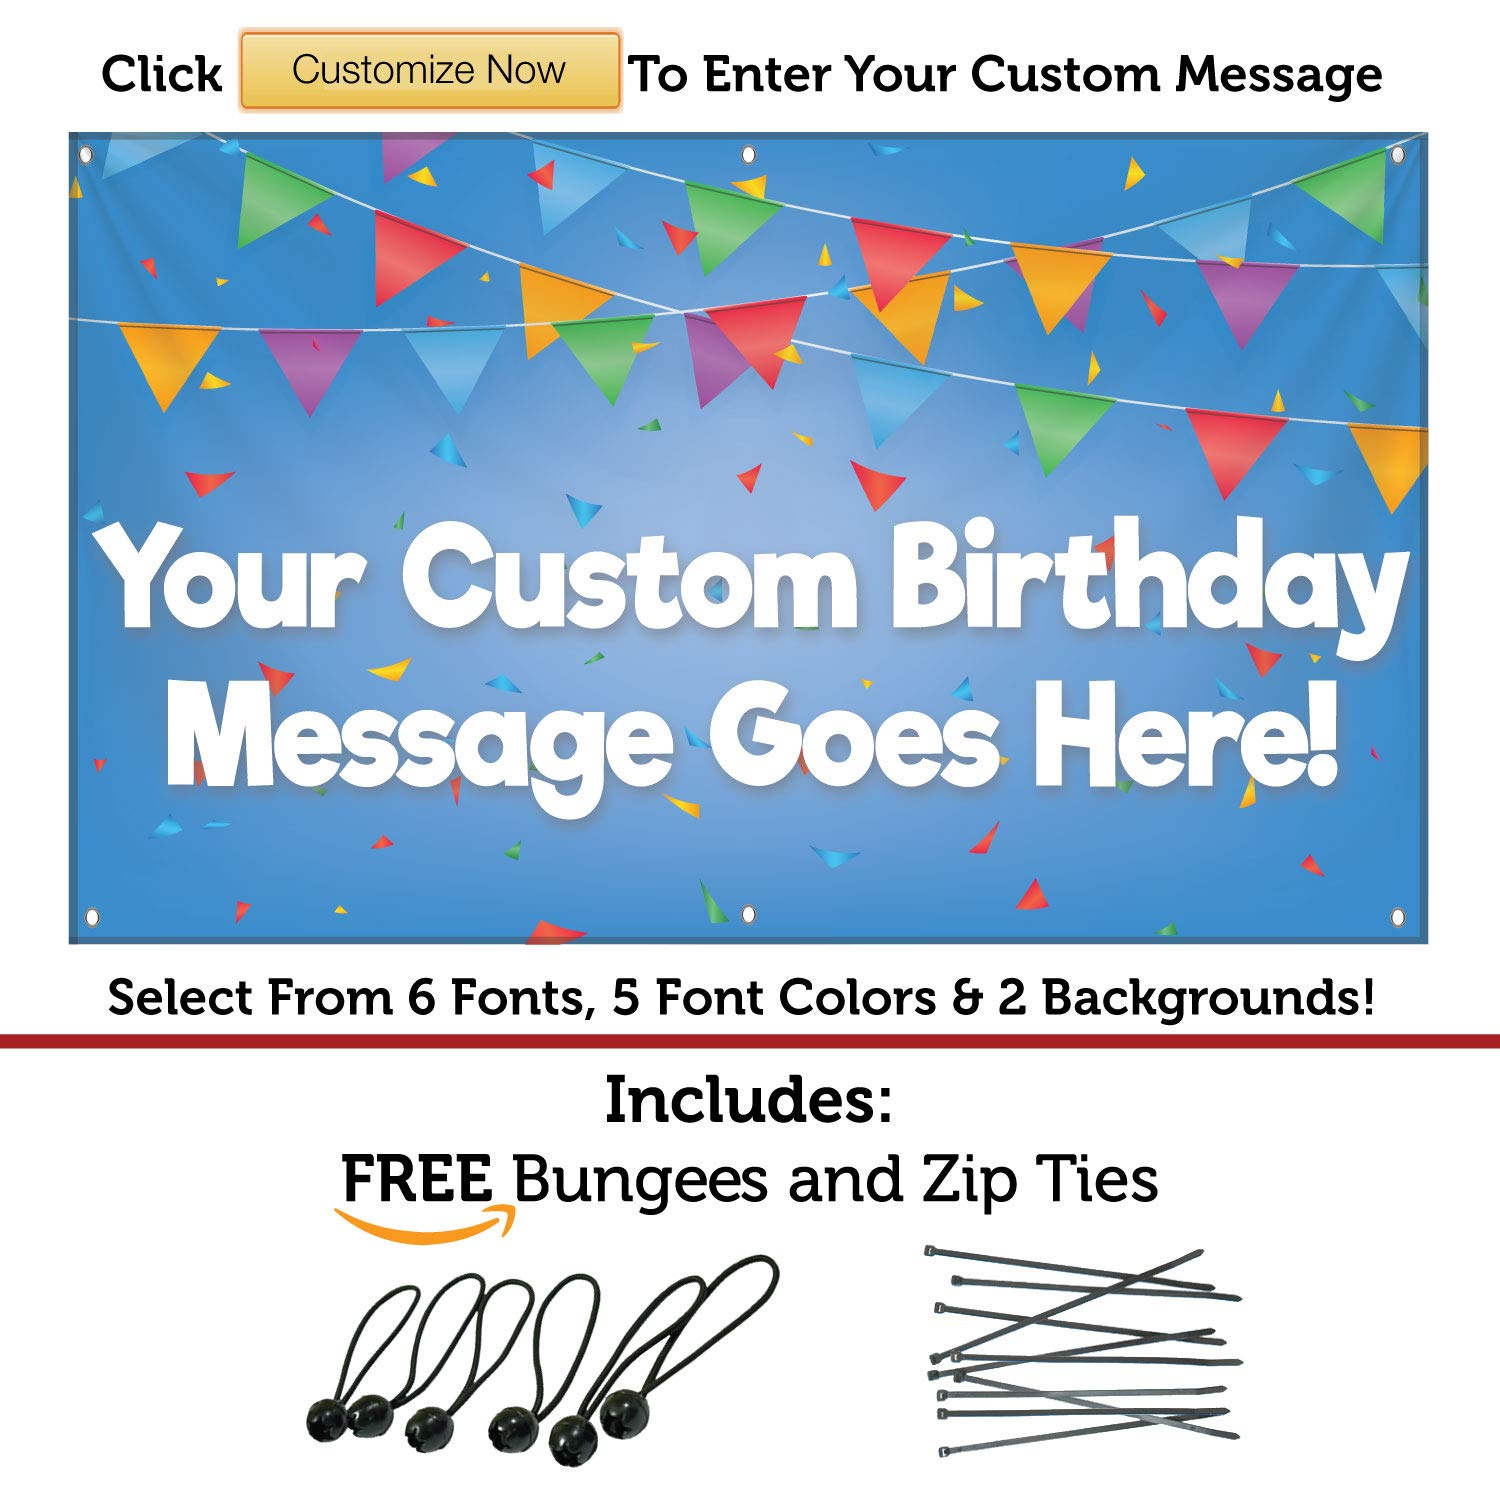 HALF PRICE BANNERS |Custom Birthday Decorations Vinyl Banner-Indoor/Outdoor 3X5 foot-Blue| Includes Ball Bungees & Zip Ties|Easy Hang Sign-Made in USA